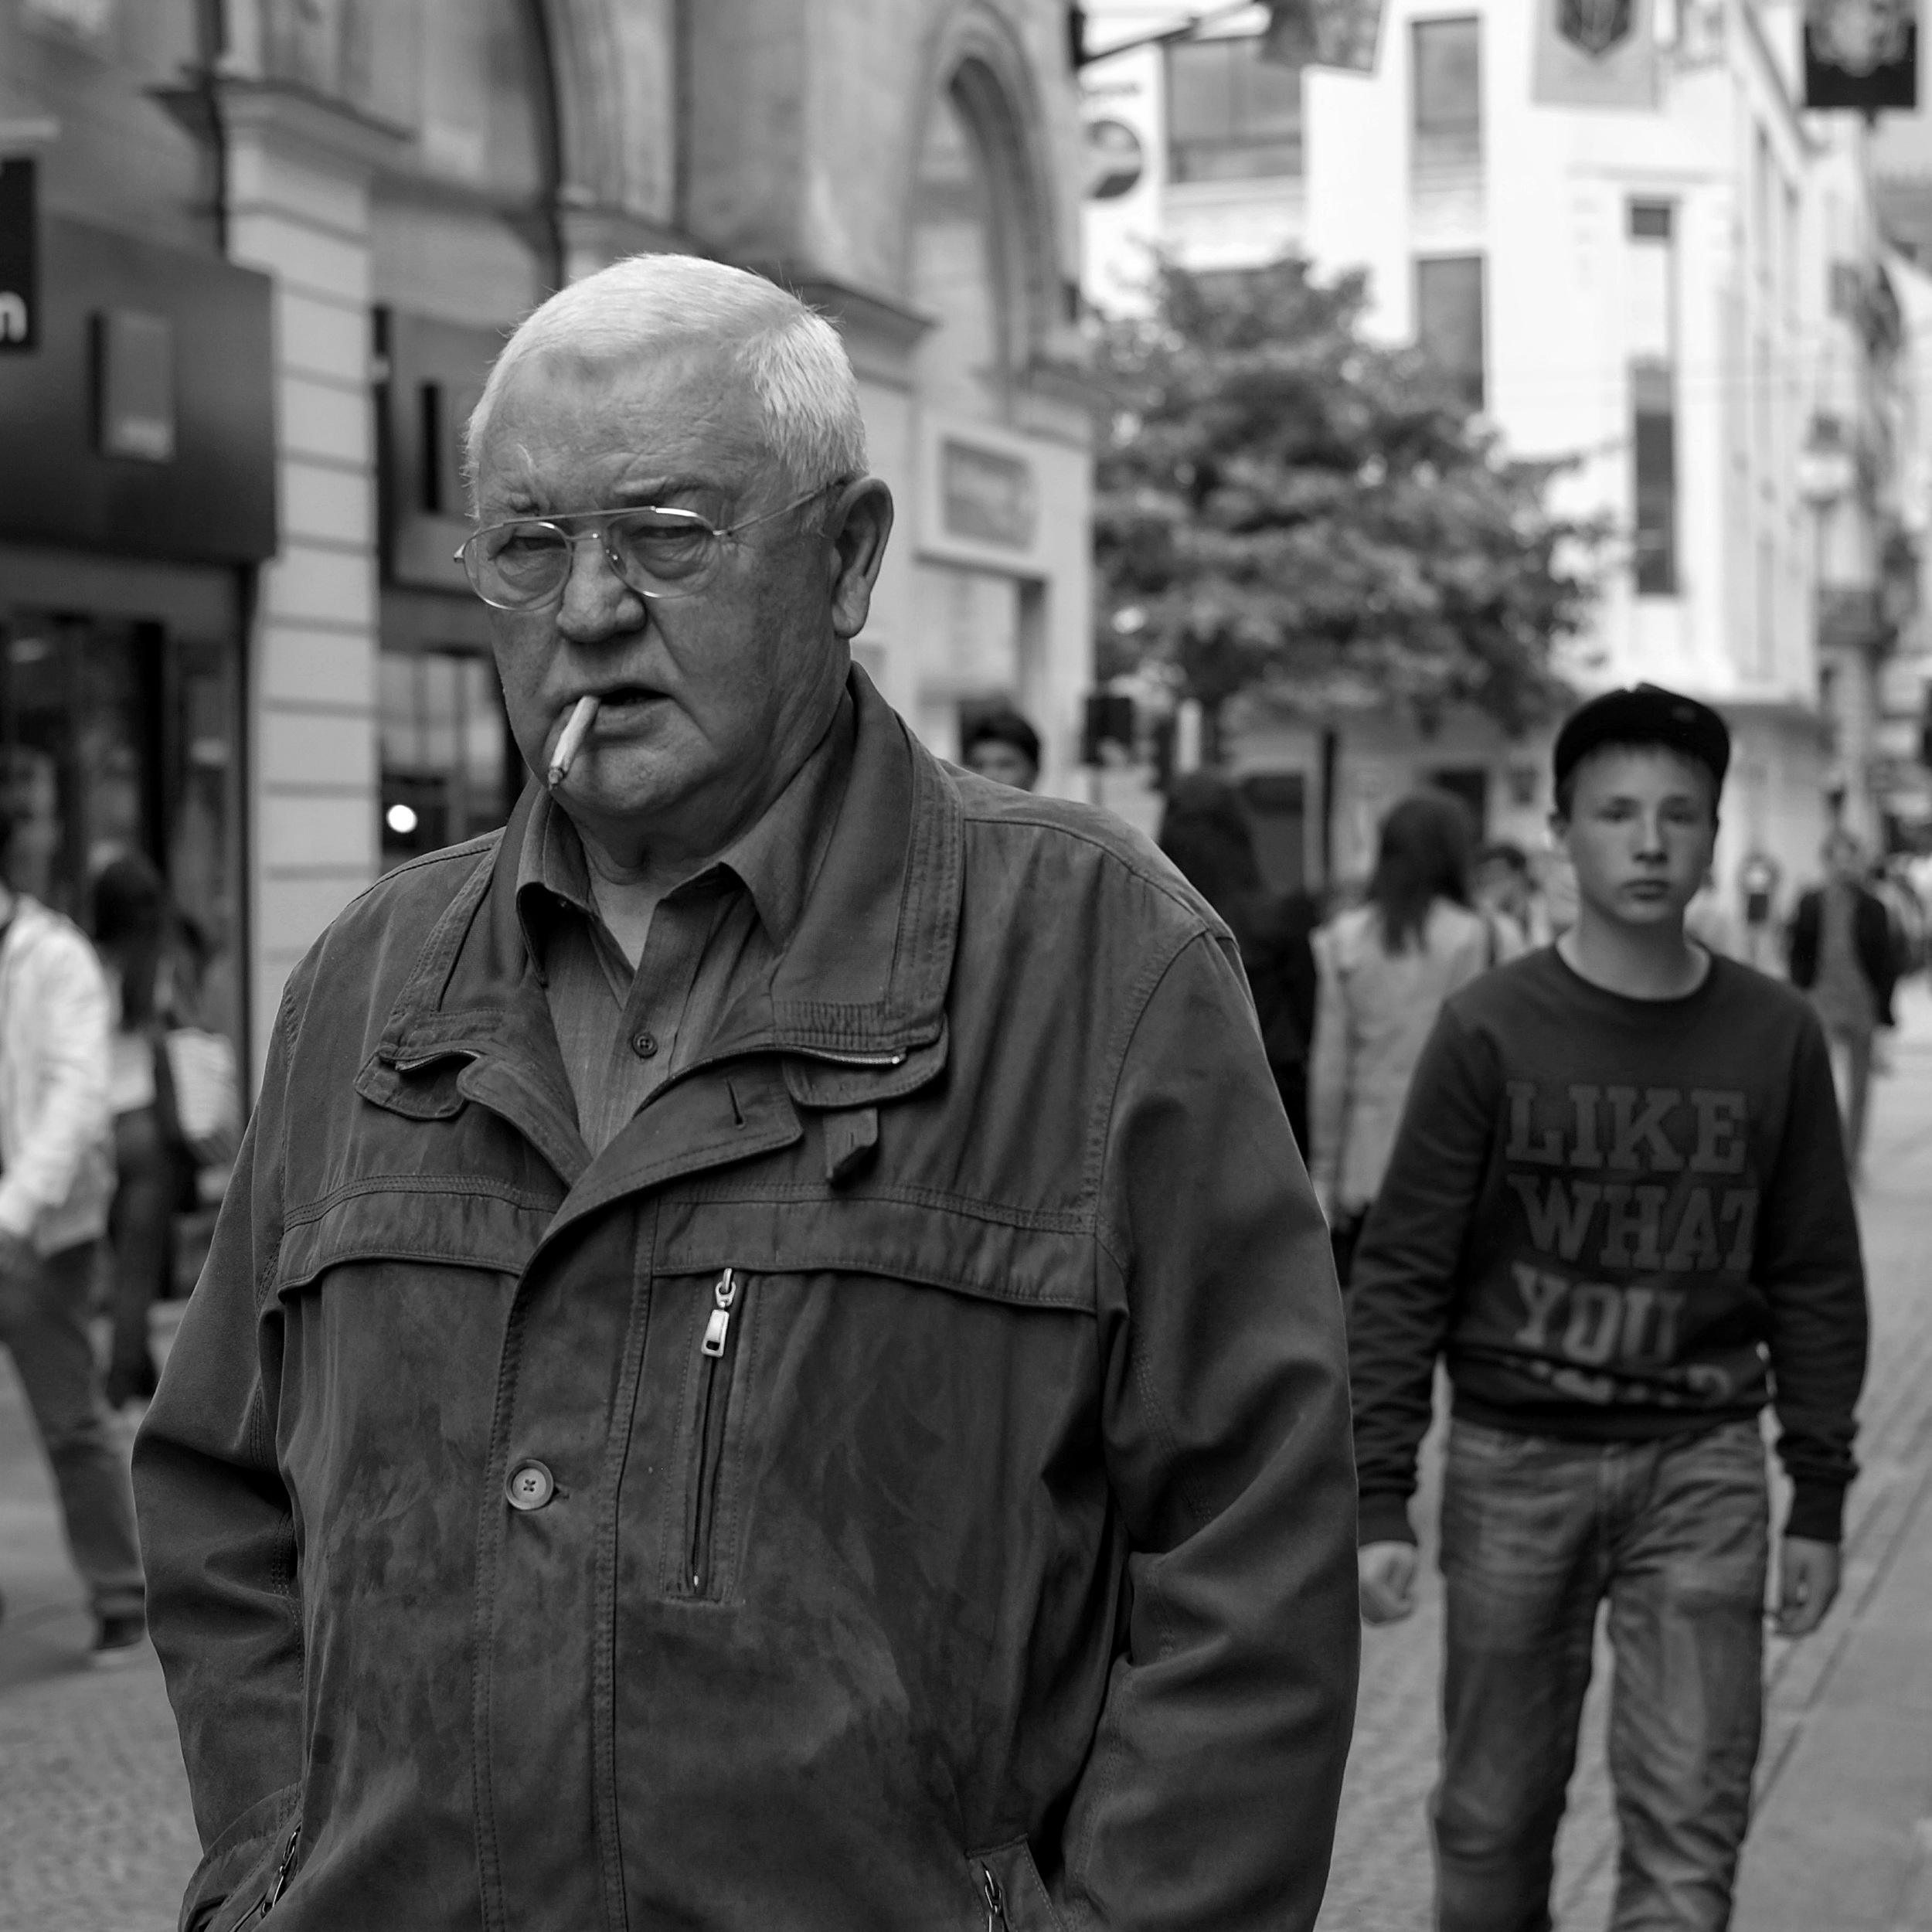 Old man with cigarette in Nantes - Fuji X-Pro1